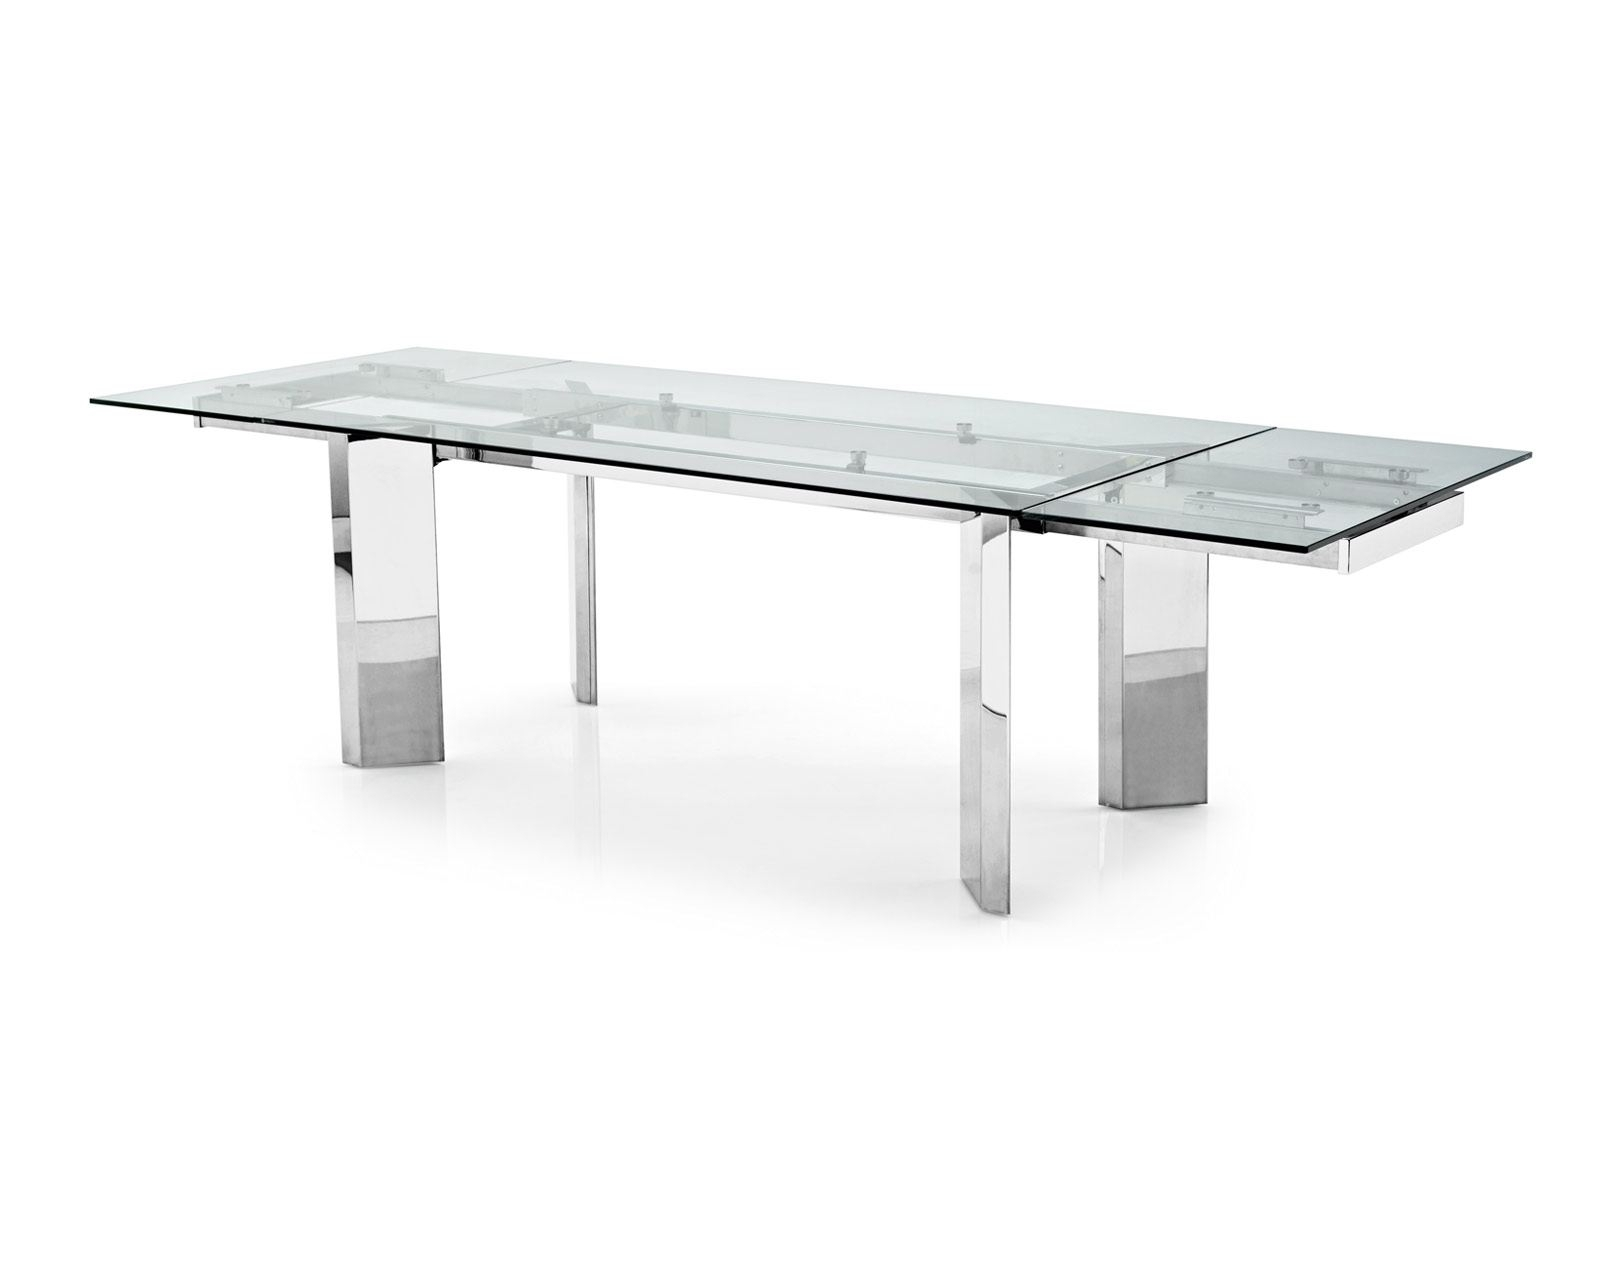 Newest Wonderful Round Glass Dining Table With Four Chrome Metal Base Be Intended For Chrome Glass Dining Tables (Gallery 17 of 25)